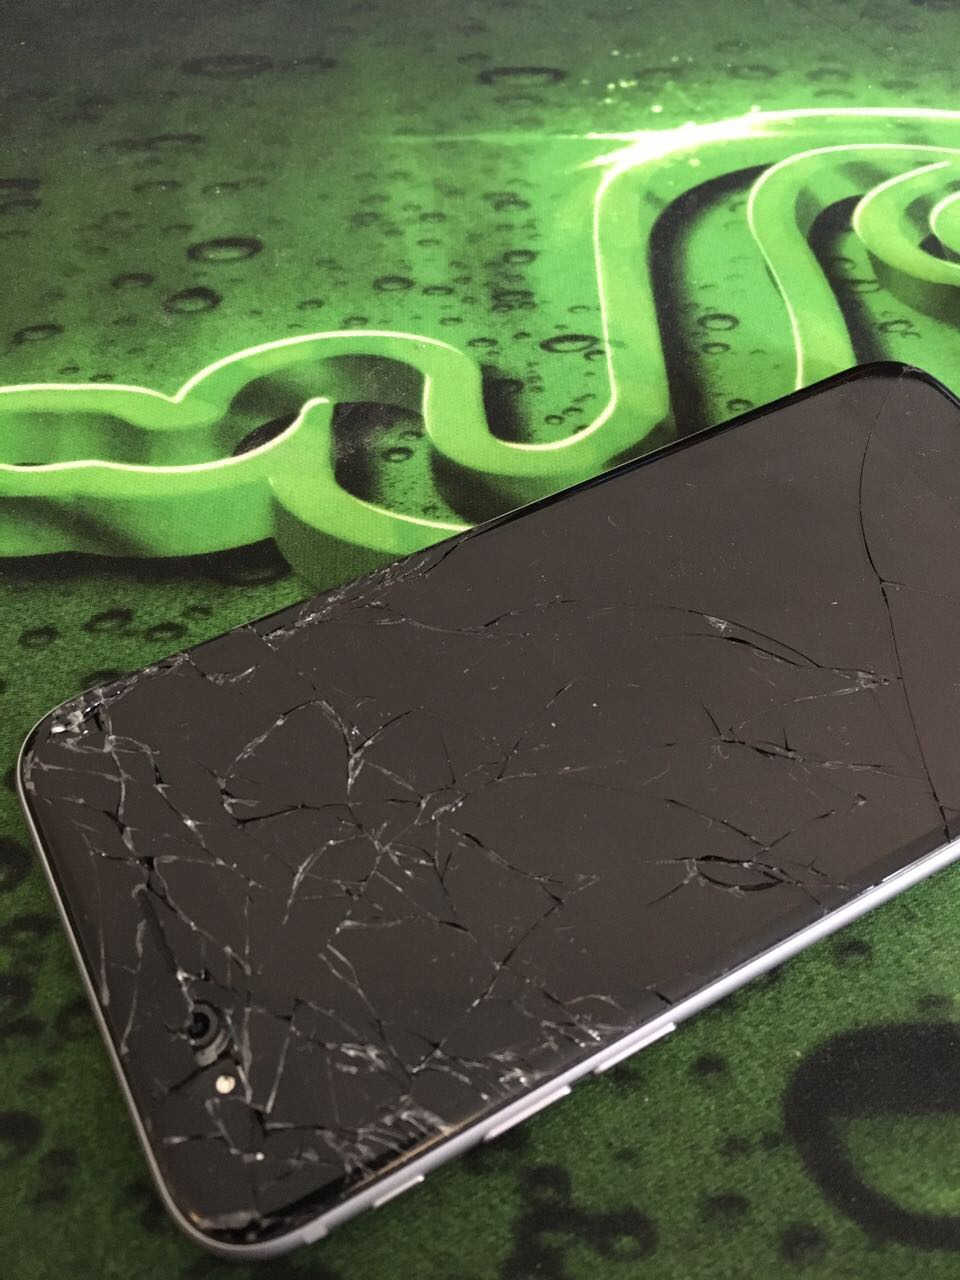 iPhone 7 Screen Smashed in Dubai